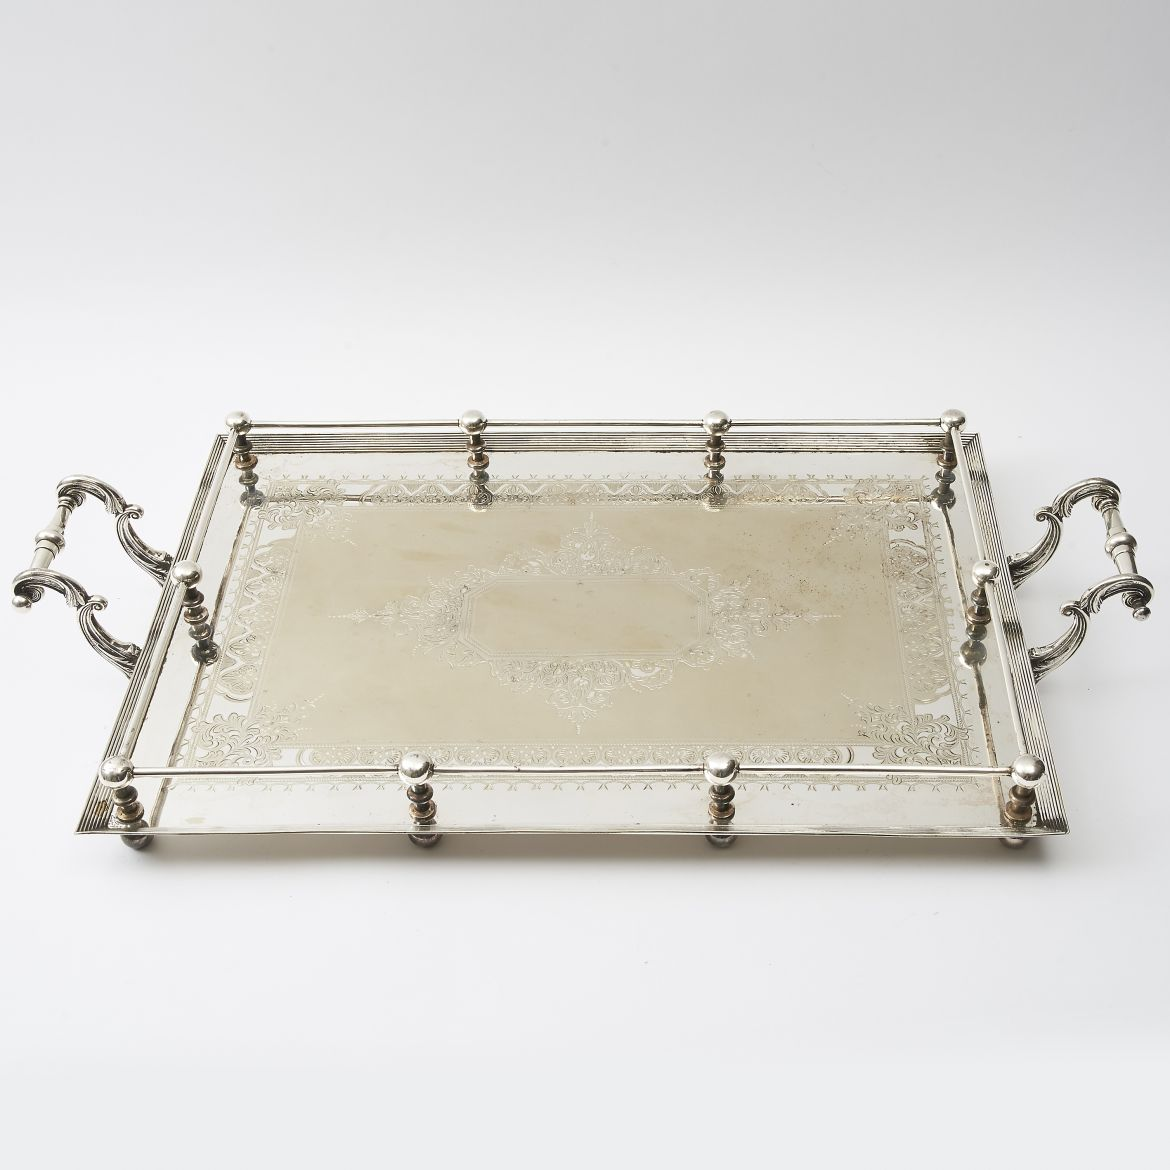 Engraved Silver Tray